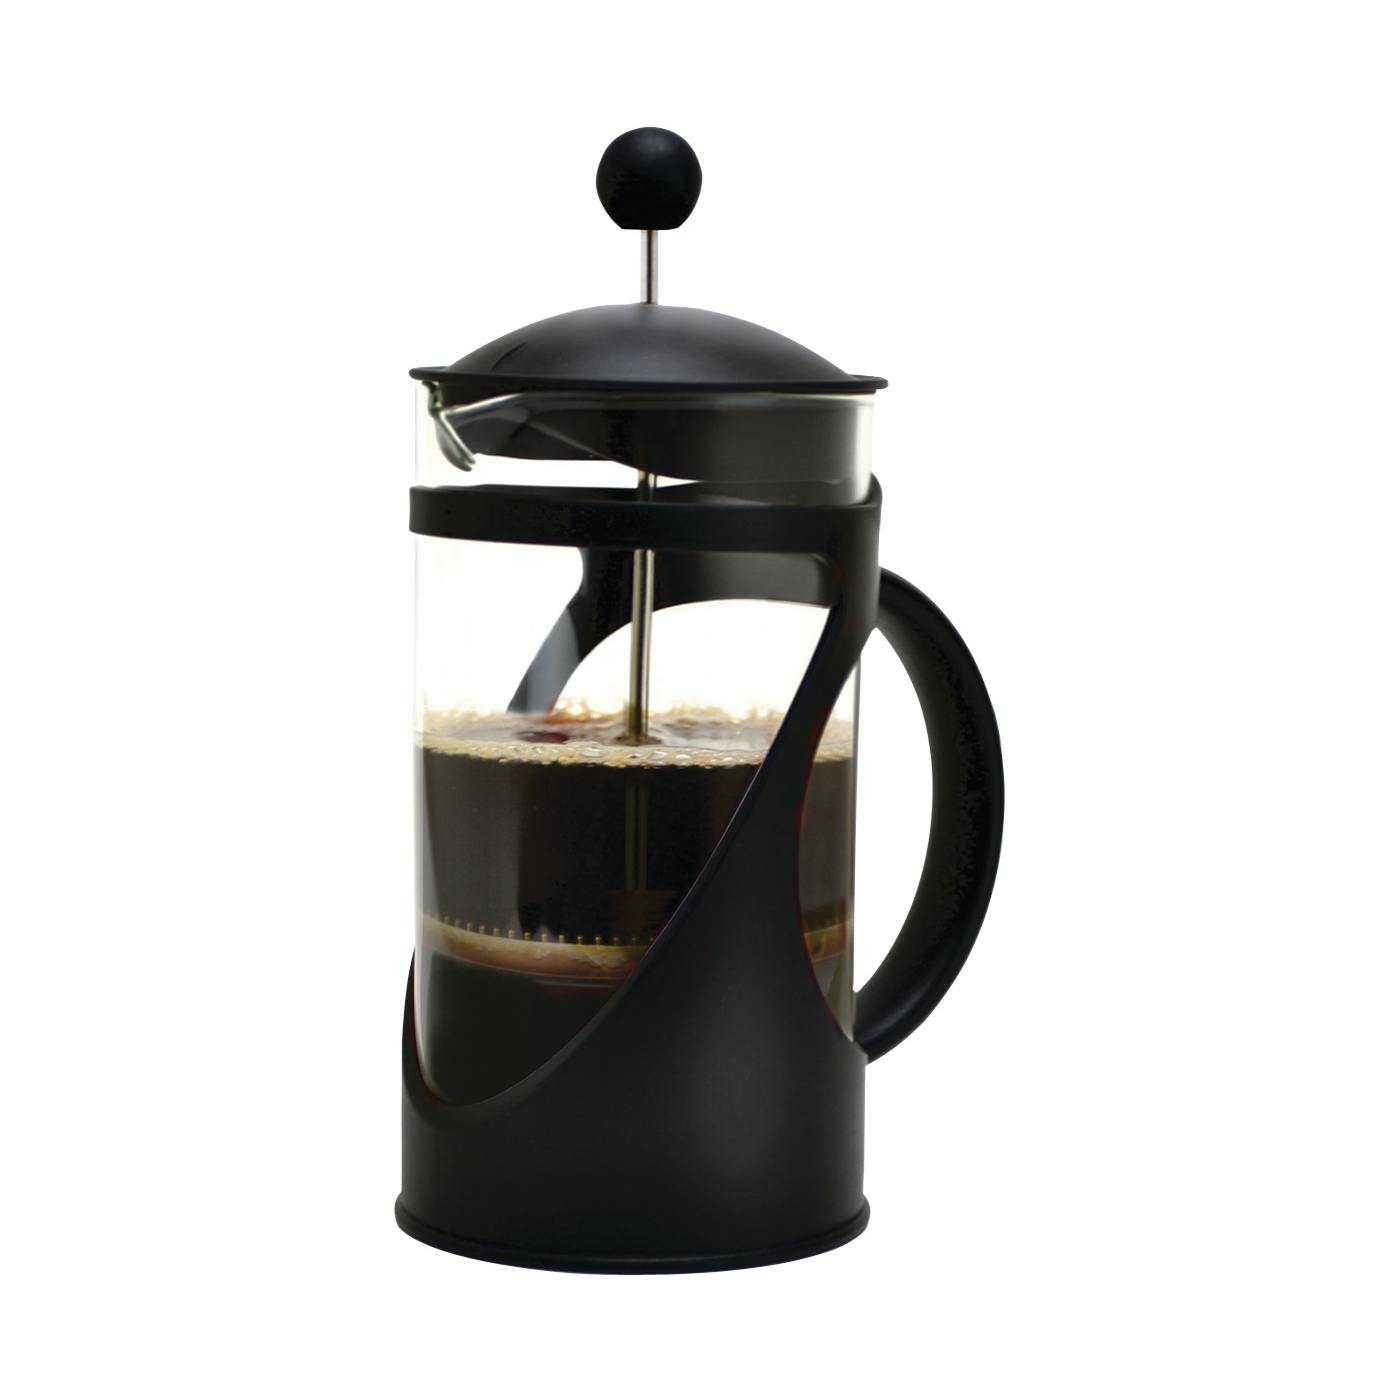 Picture of Primula TCP-2908 Coffee Press, 8 Cups Capacity, Borosilicate Glass/Plastic/Stainless Steel, Black